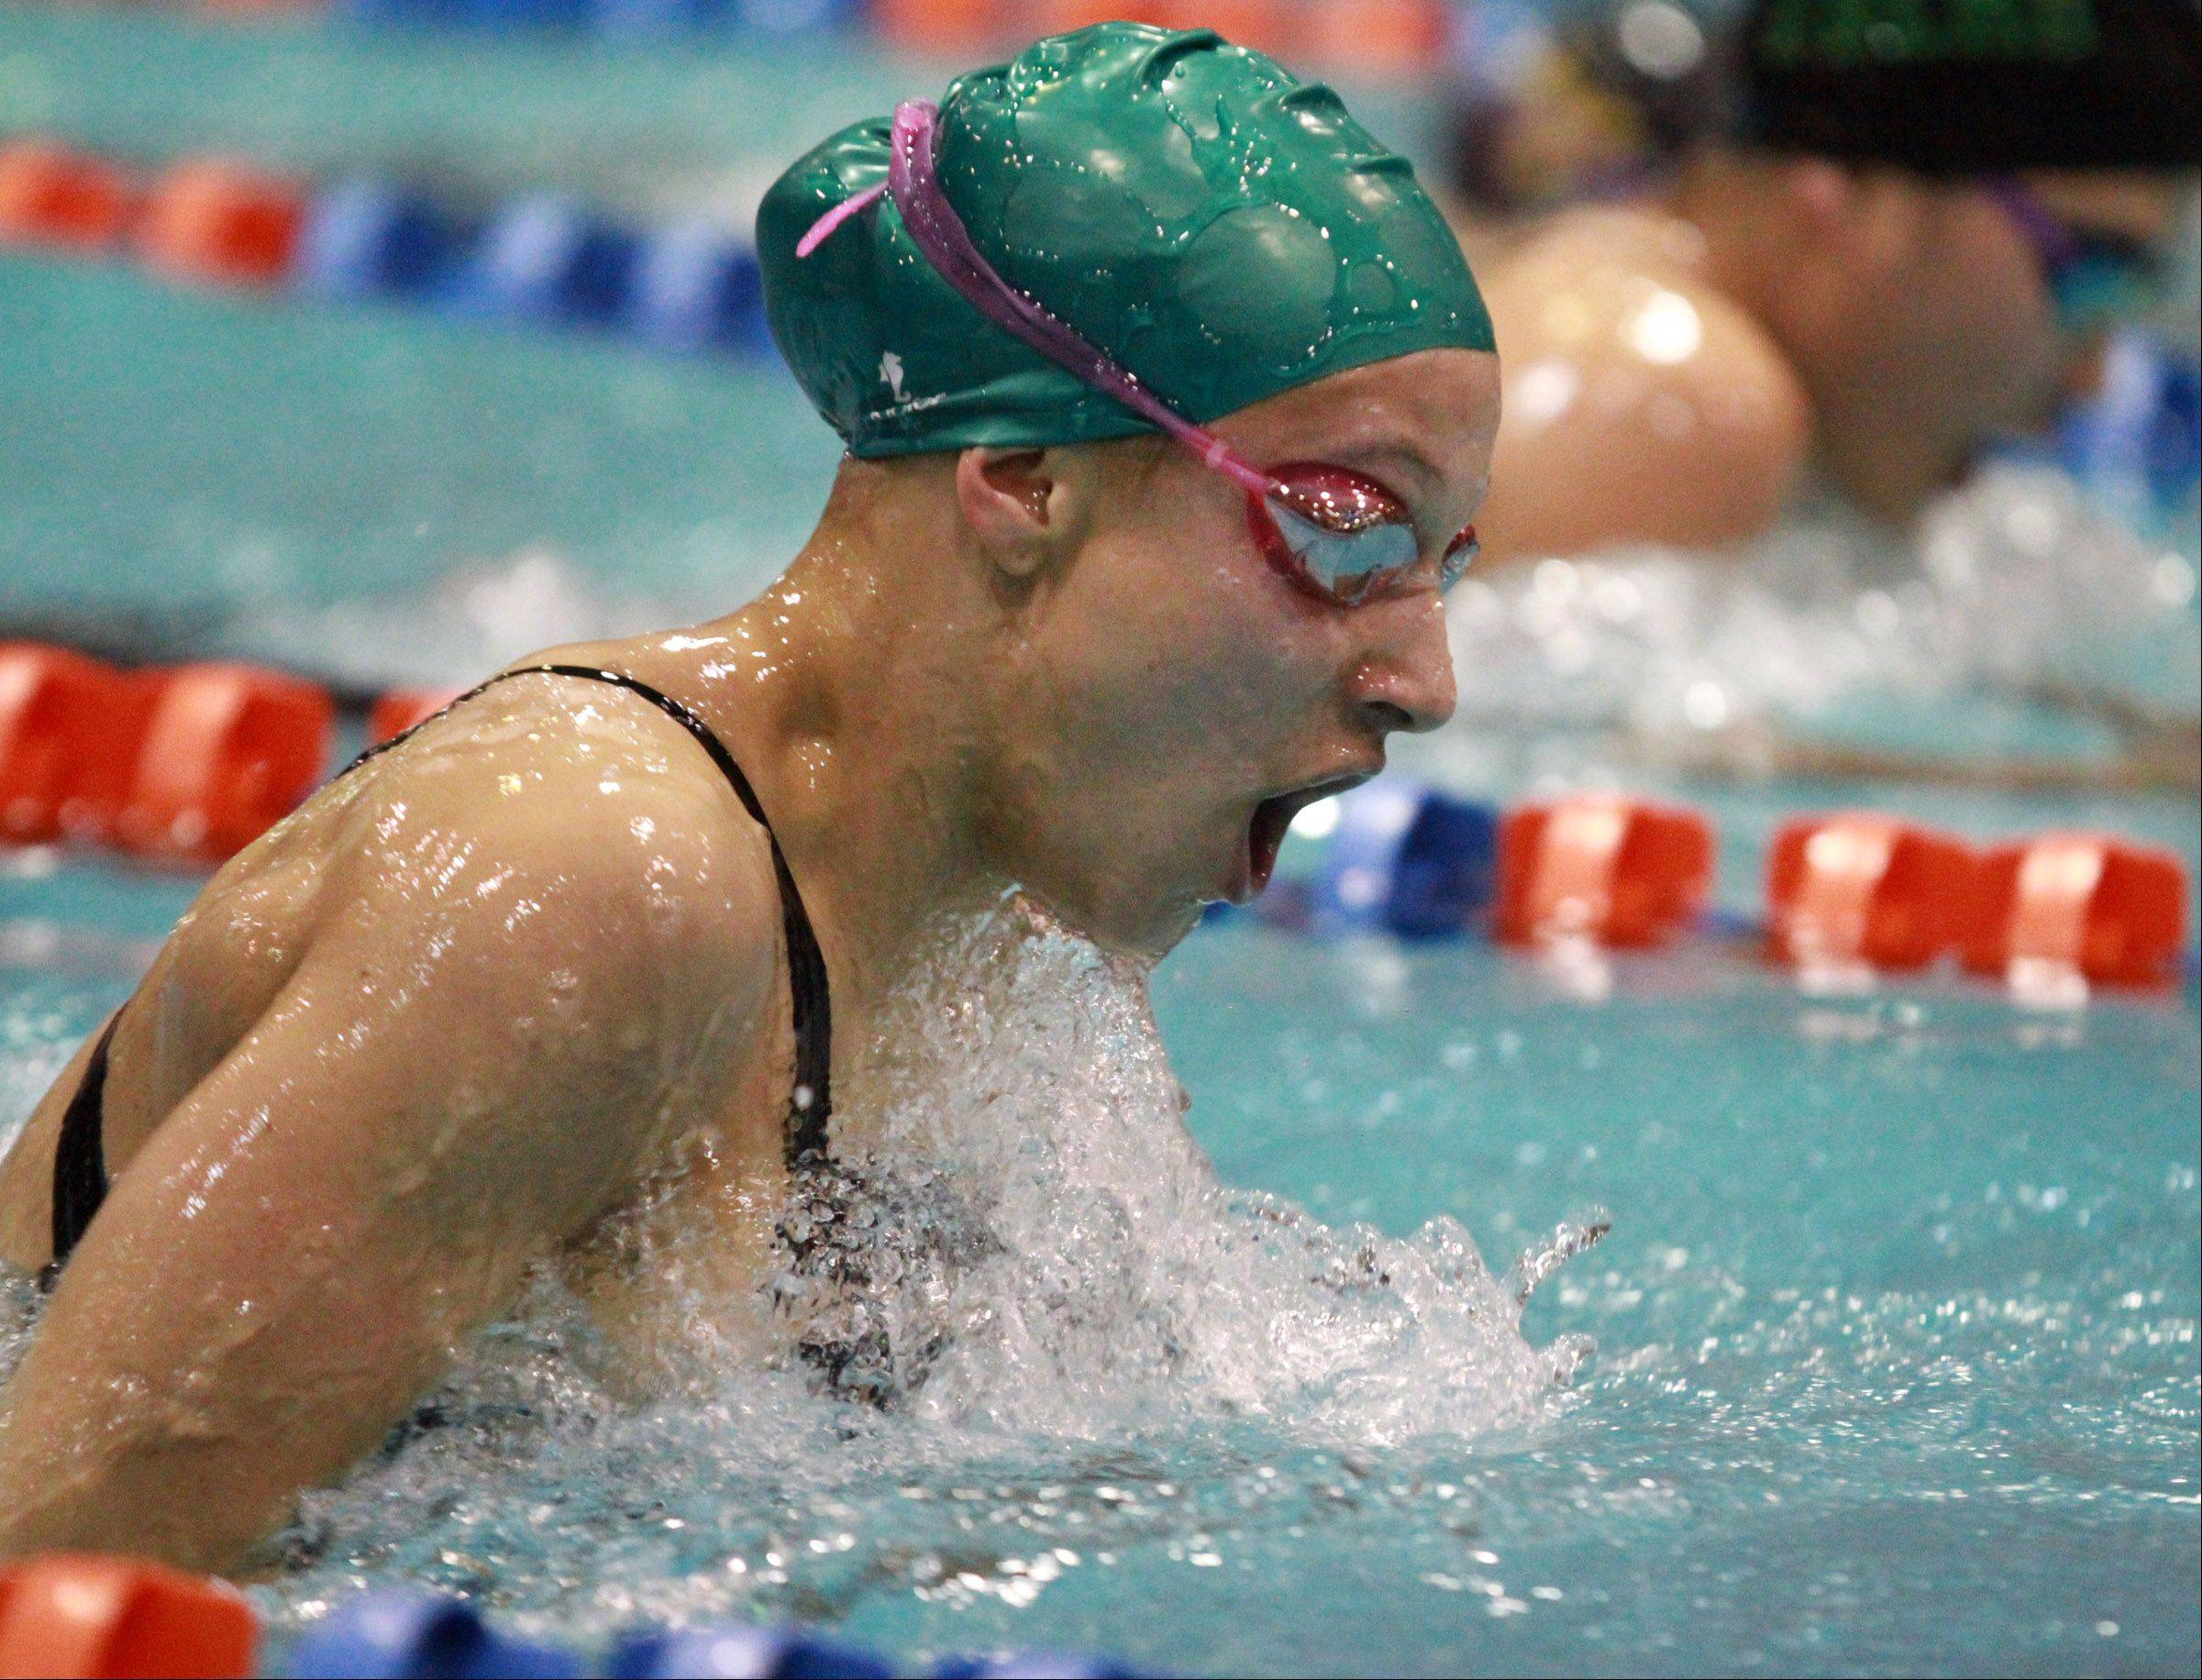 Claire Haggerty with Grayslake Central swims the 200-yard individual medley at state preliminaries in Evanston on Friday.